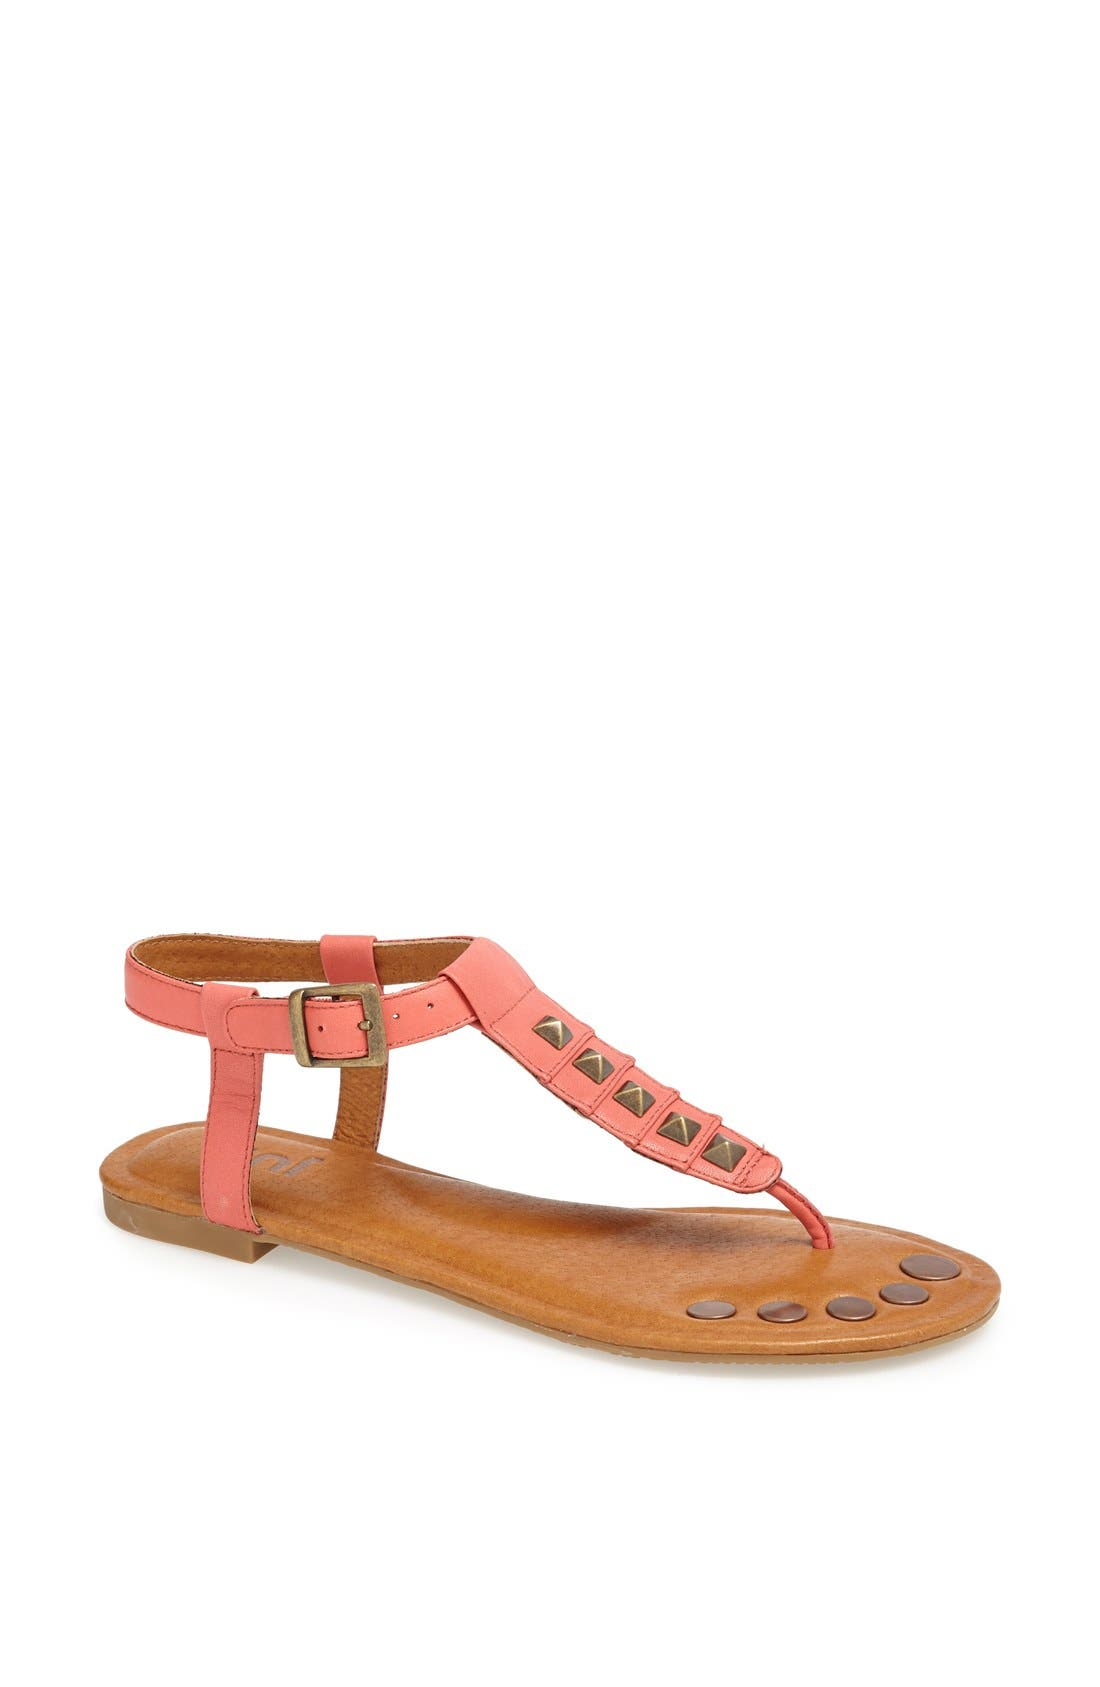 Alternate Image 1 Selected - Juil 'Kava' Grounded Leather Sandal